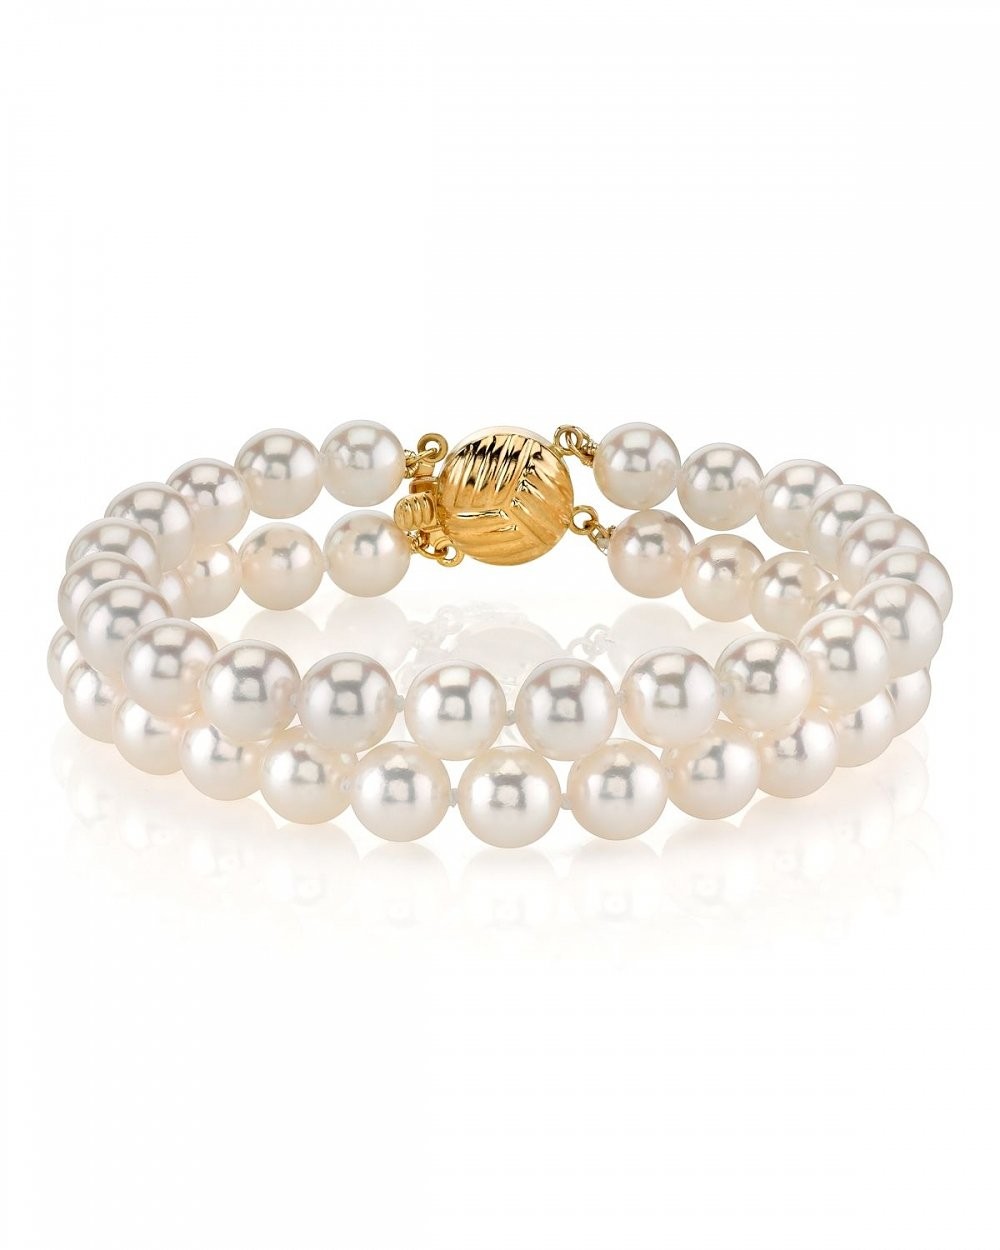 14K Gold 7.0-7.5mm Double Japanese Akoya Saltwater White Cultured Pearl Bracelet